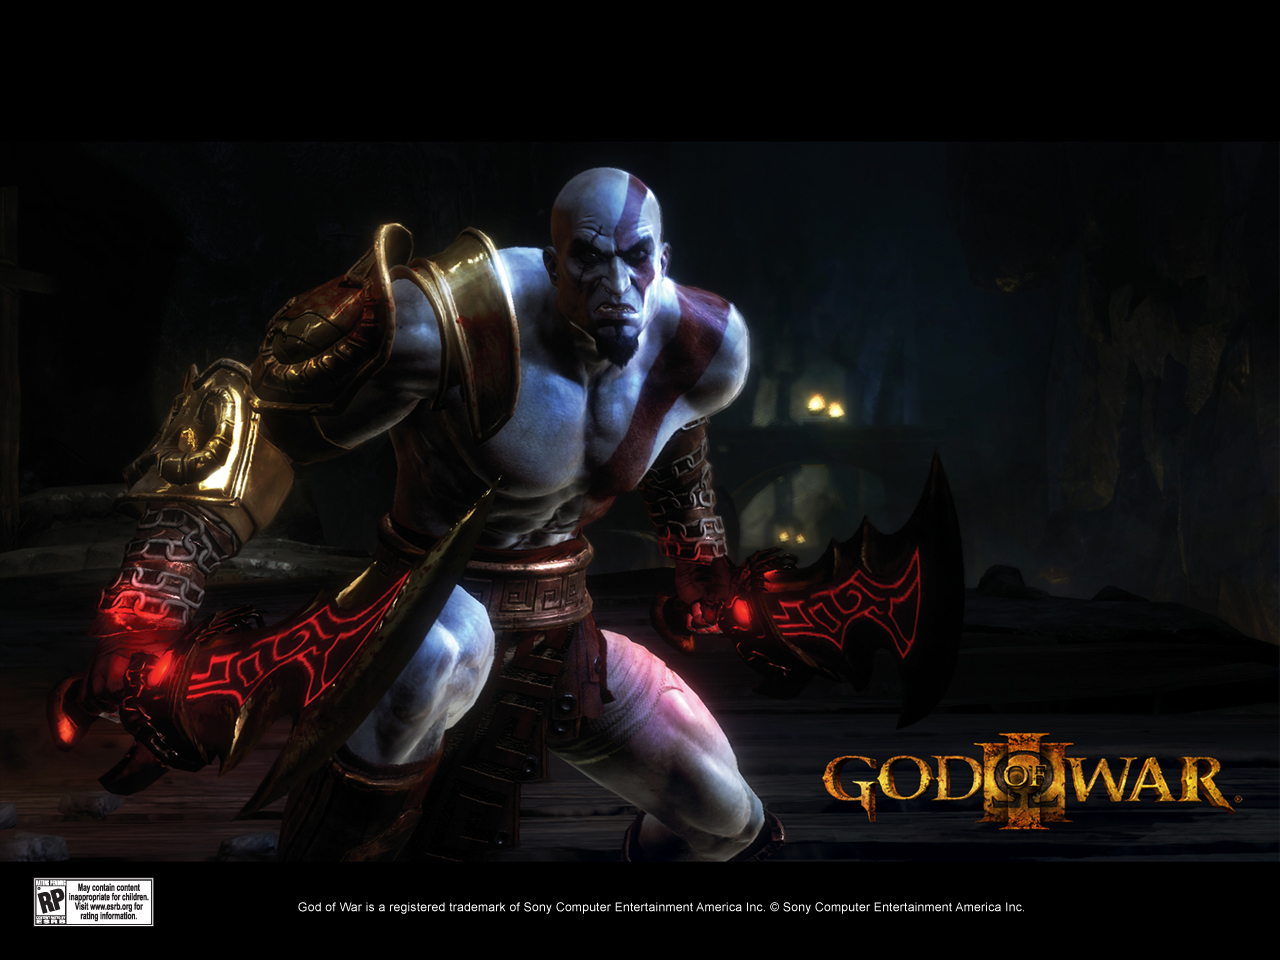 gow kratoshallhd HD Wallpaper